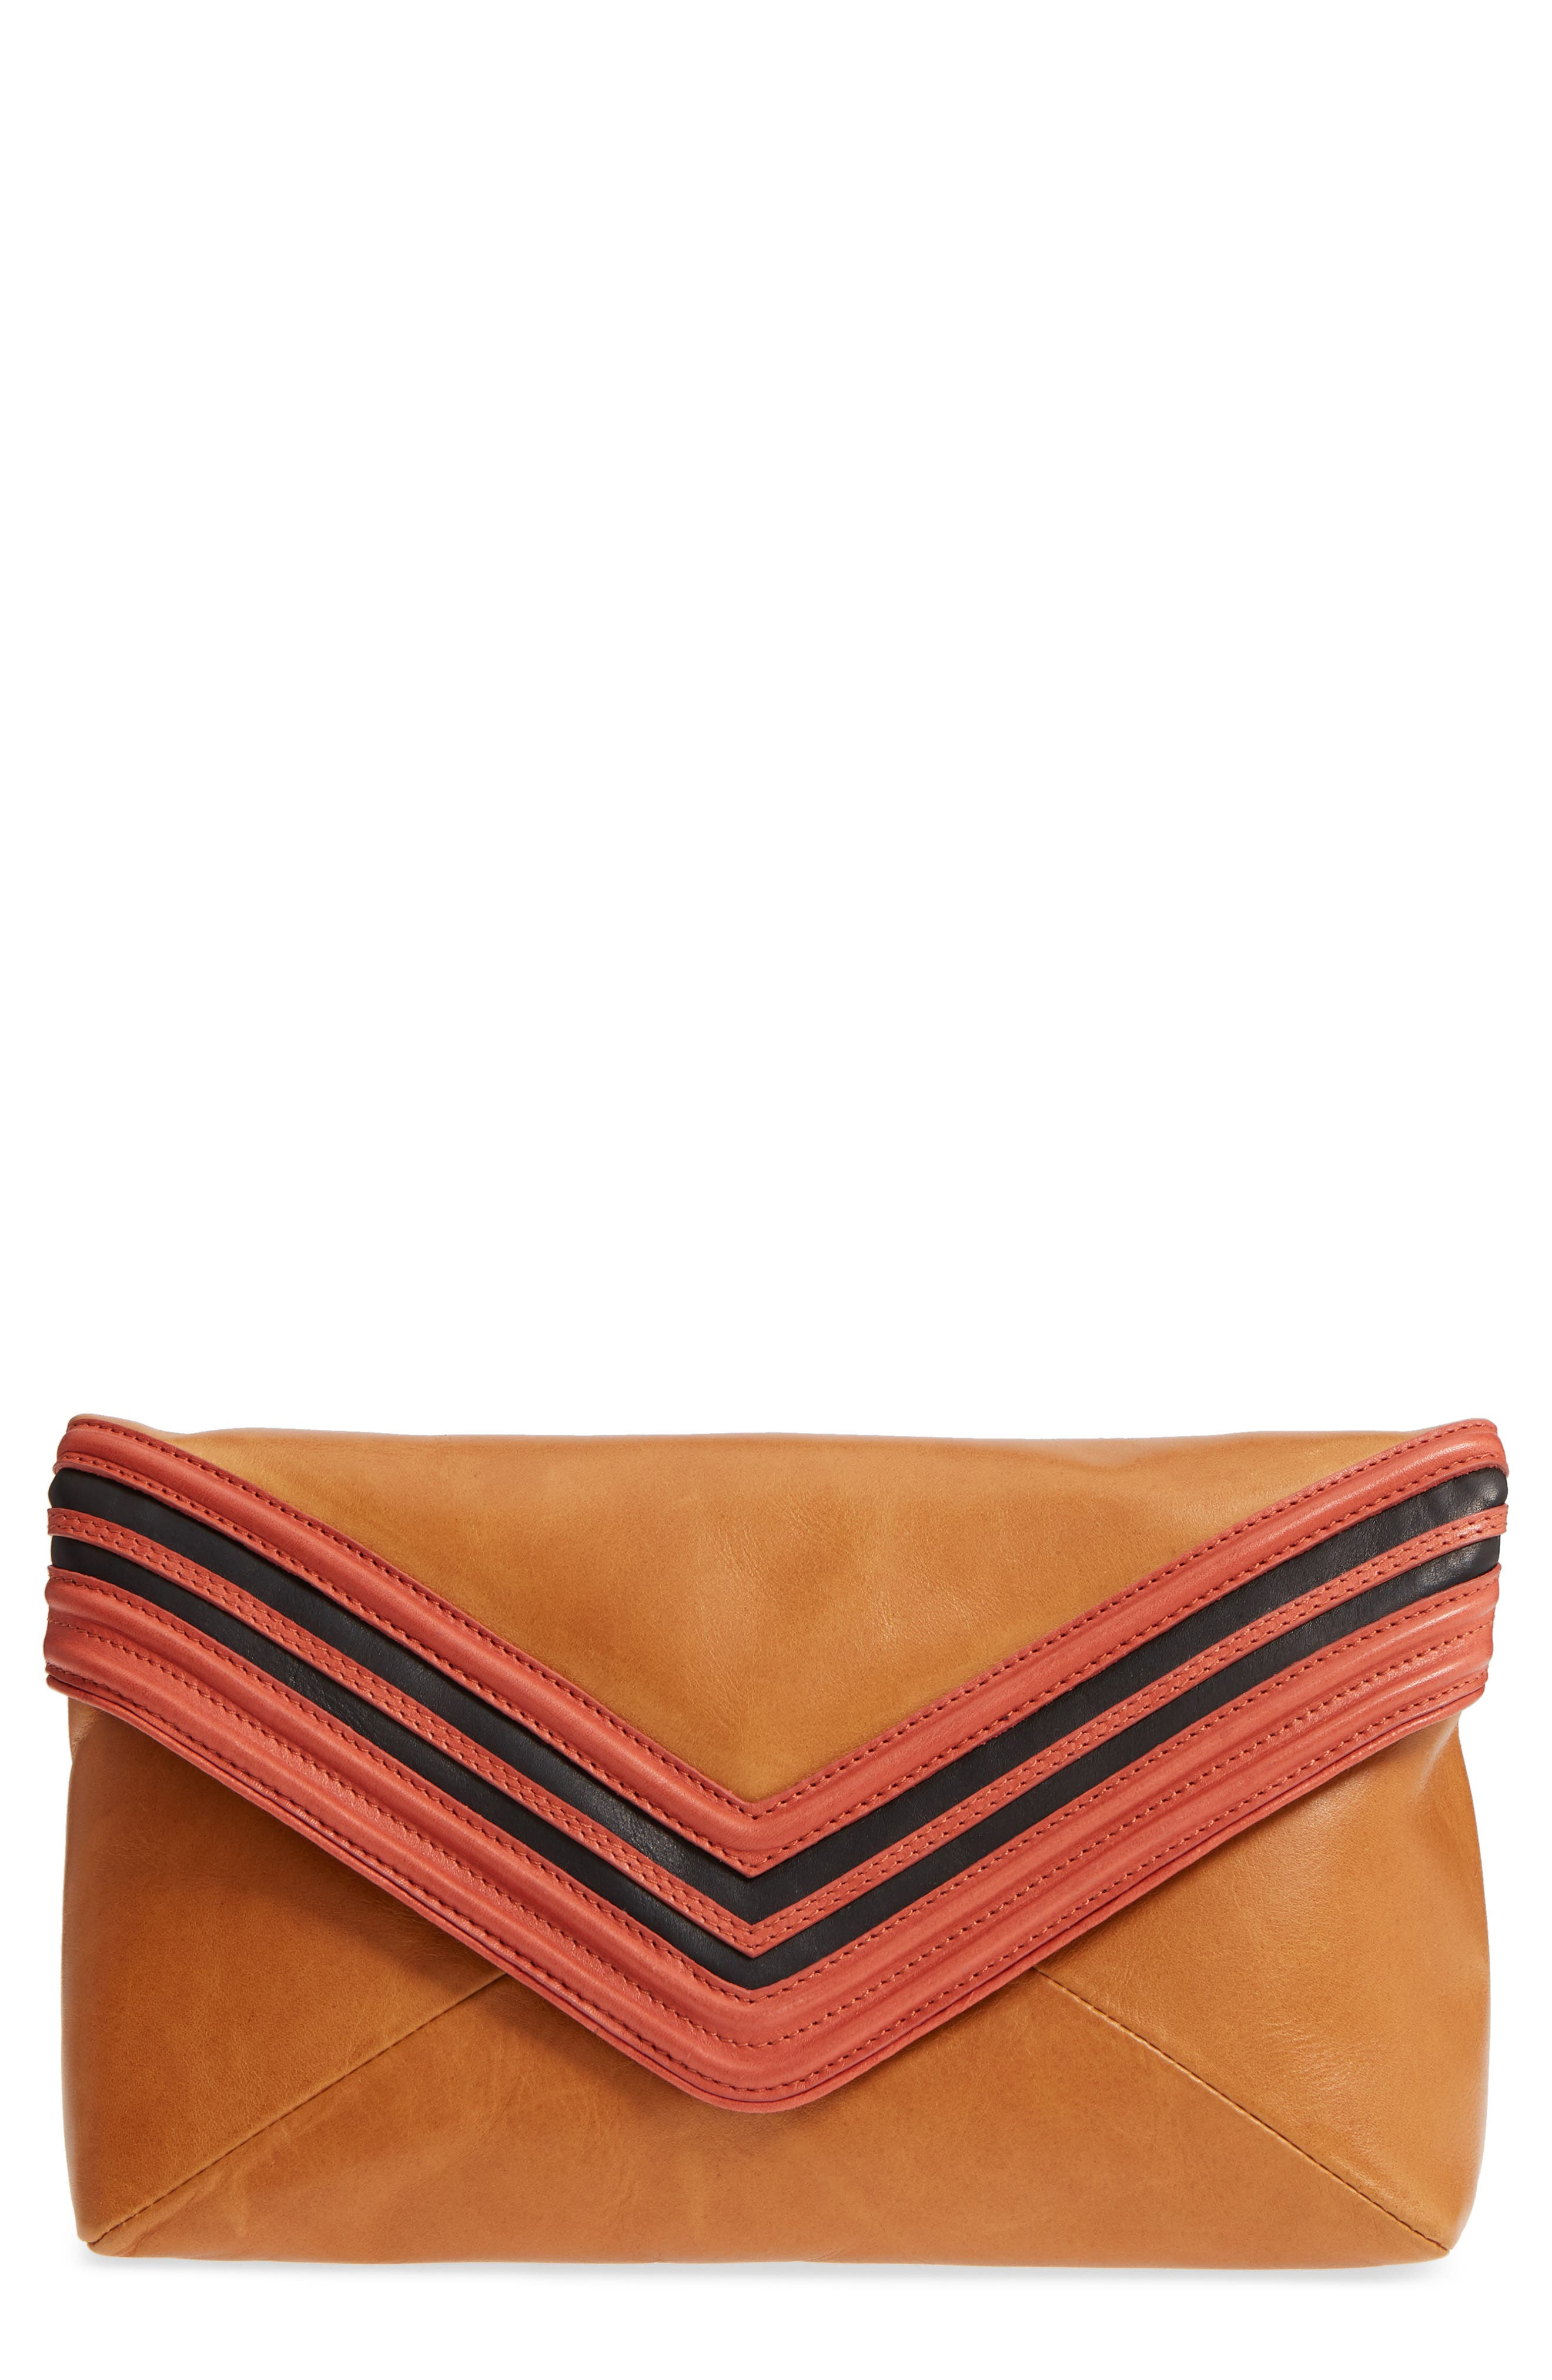 Dries Van Noten Leather Envelope Clutch